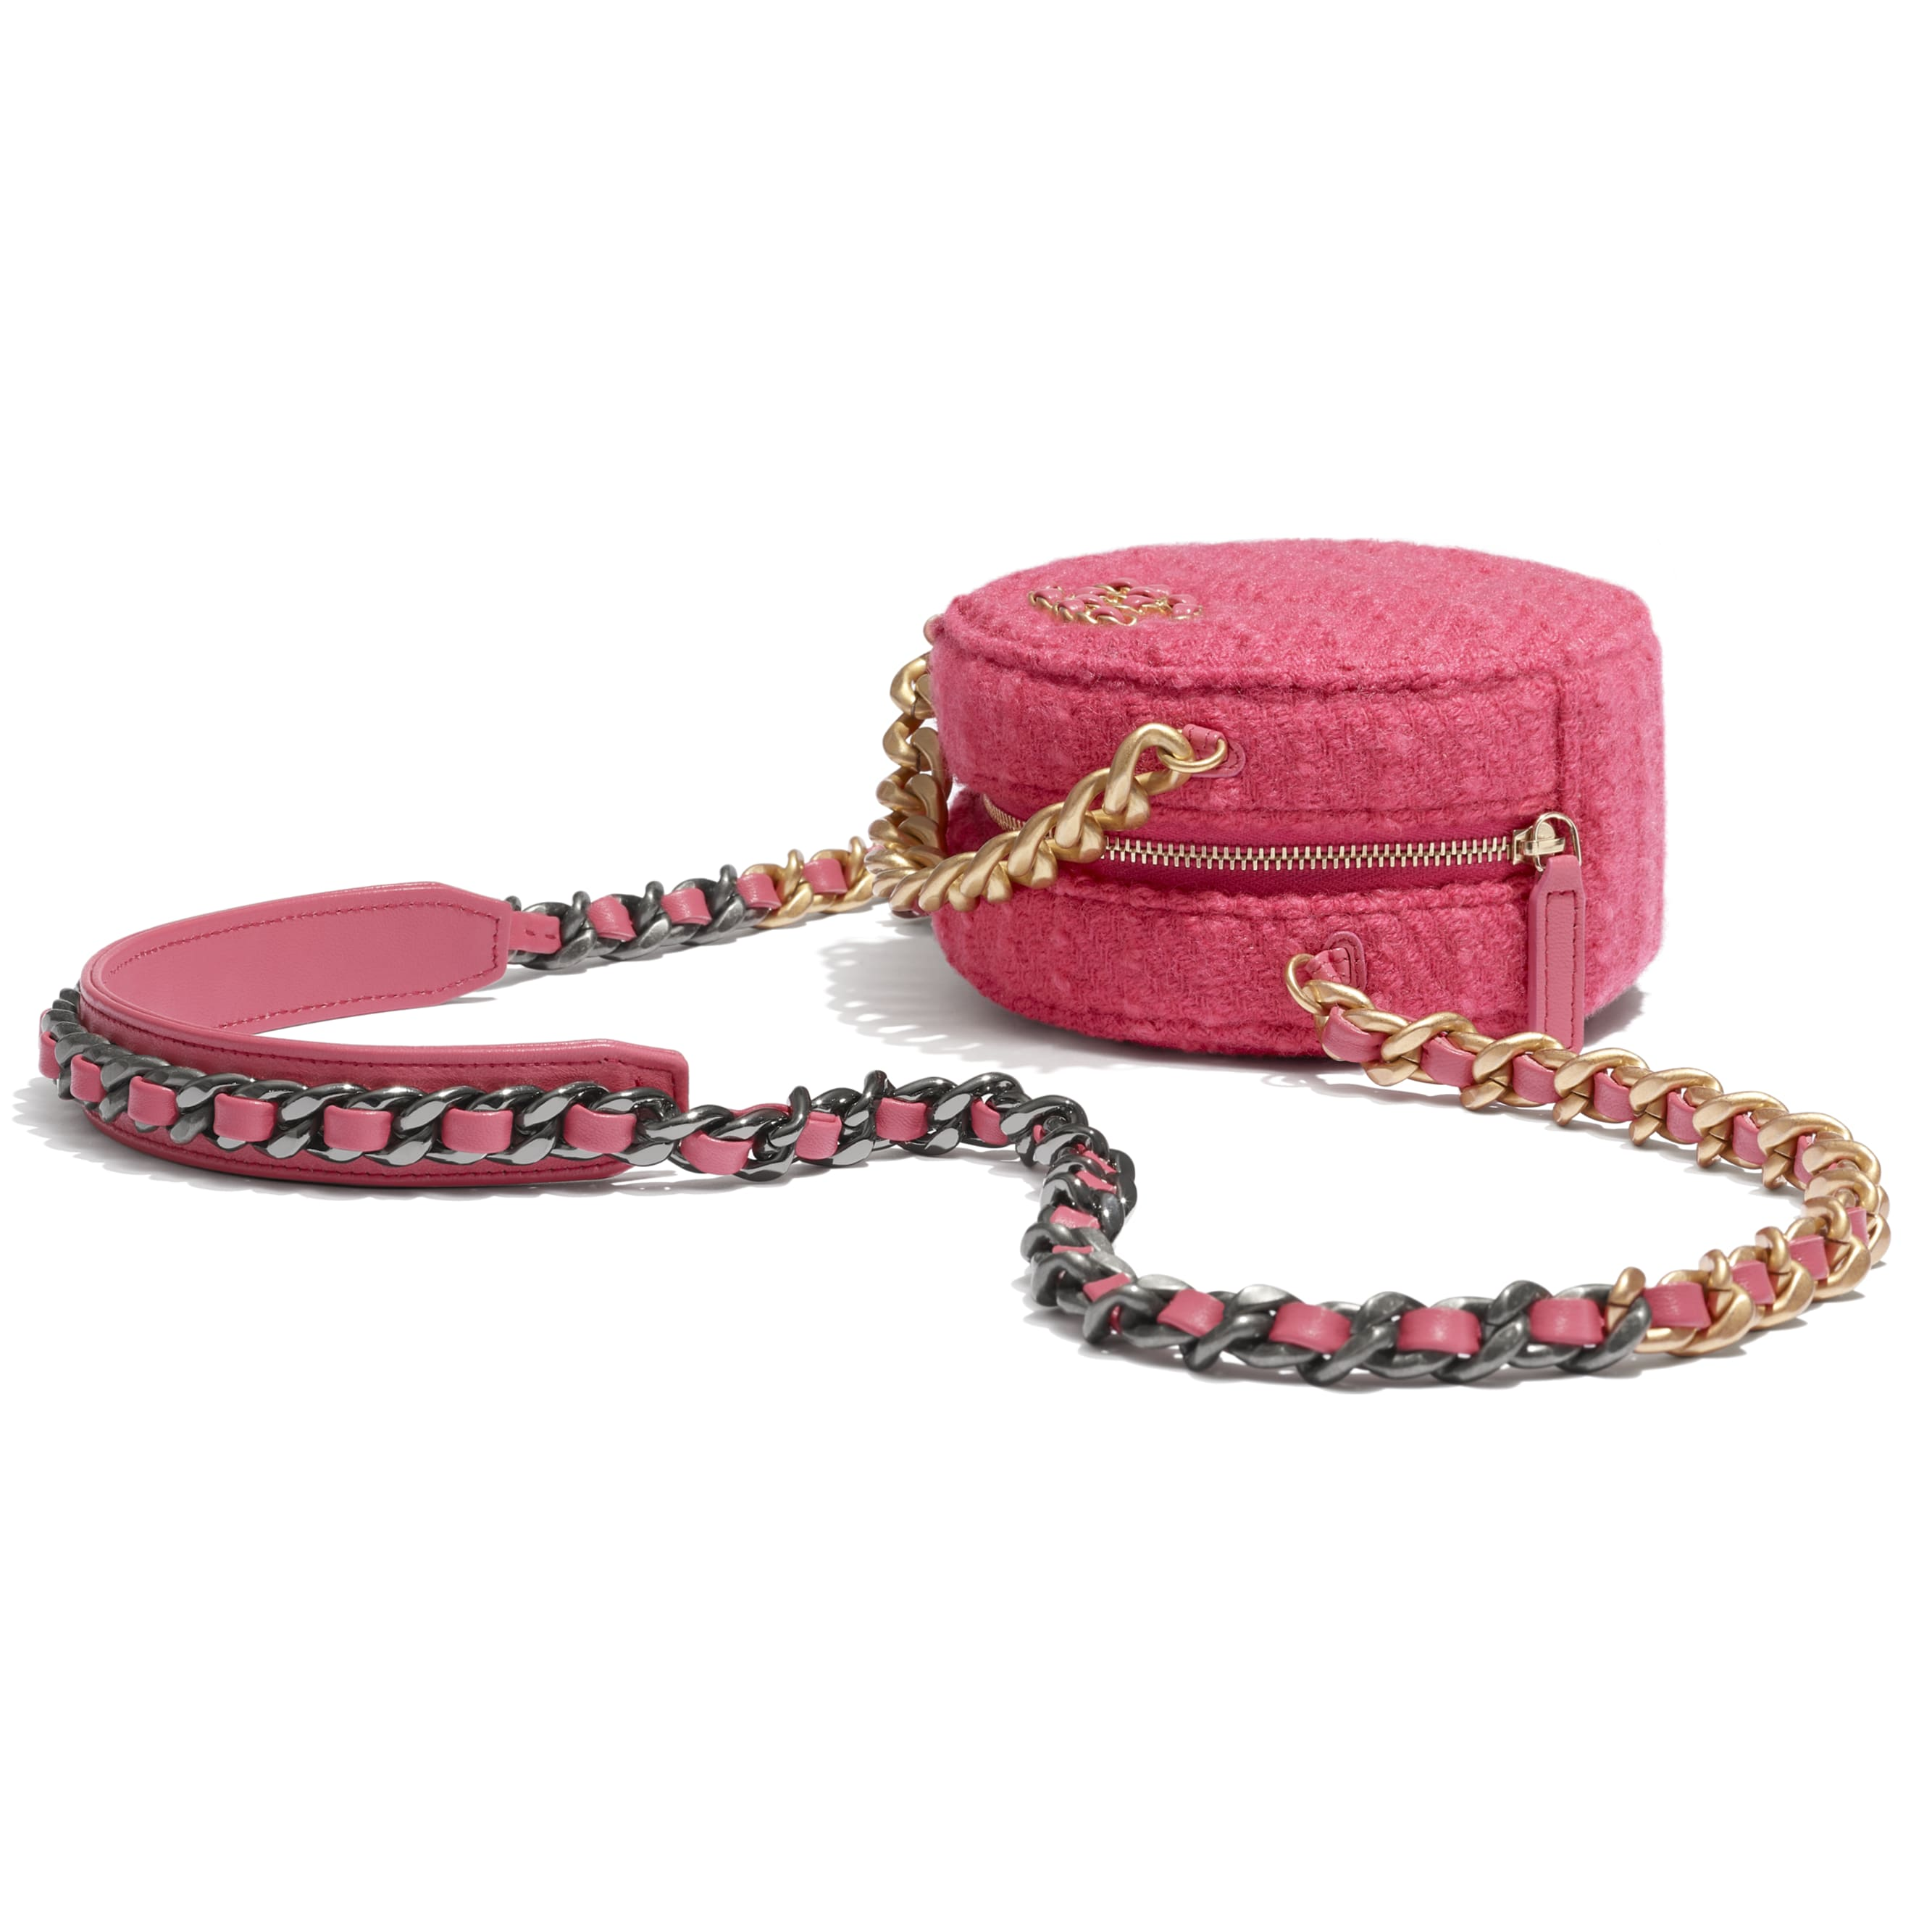 CHANEL 19 Clutch with Chain - Raspberry Pink - Wool Tweed, Gold-Tone, Silver-Tone & Ruthenium-Finish Metal - CHANEL - Extra view - see standard sized version